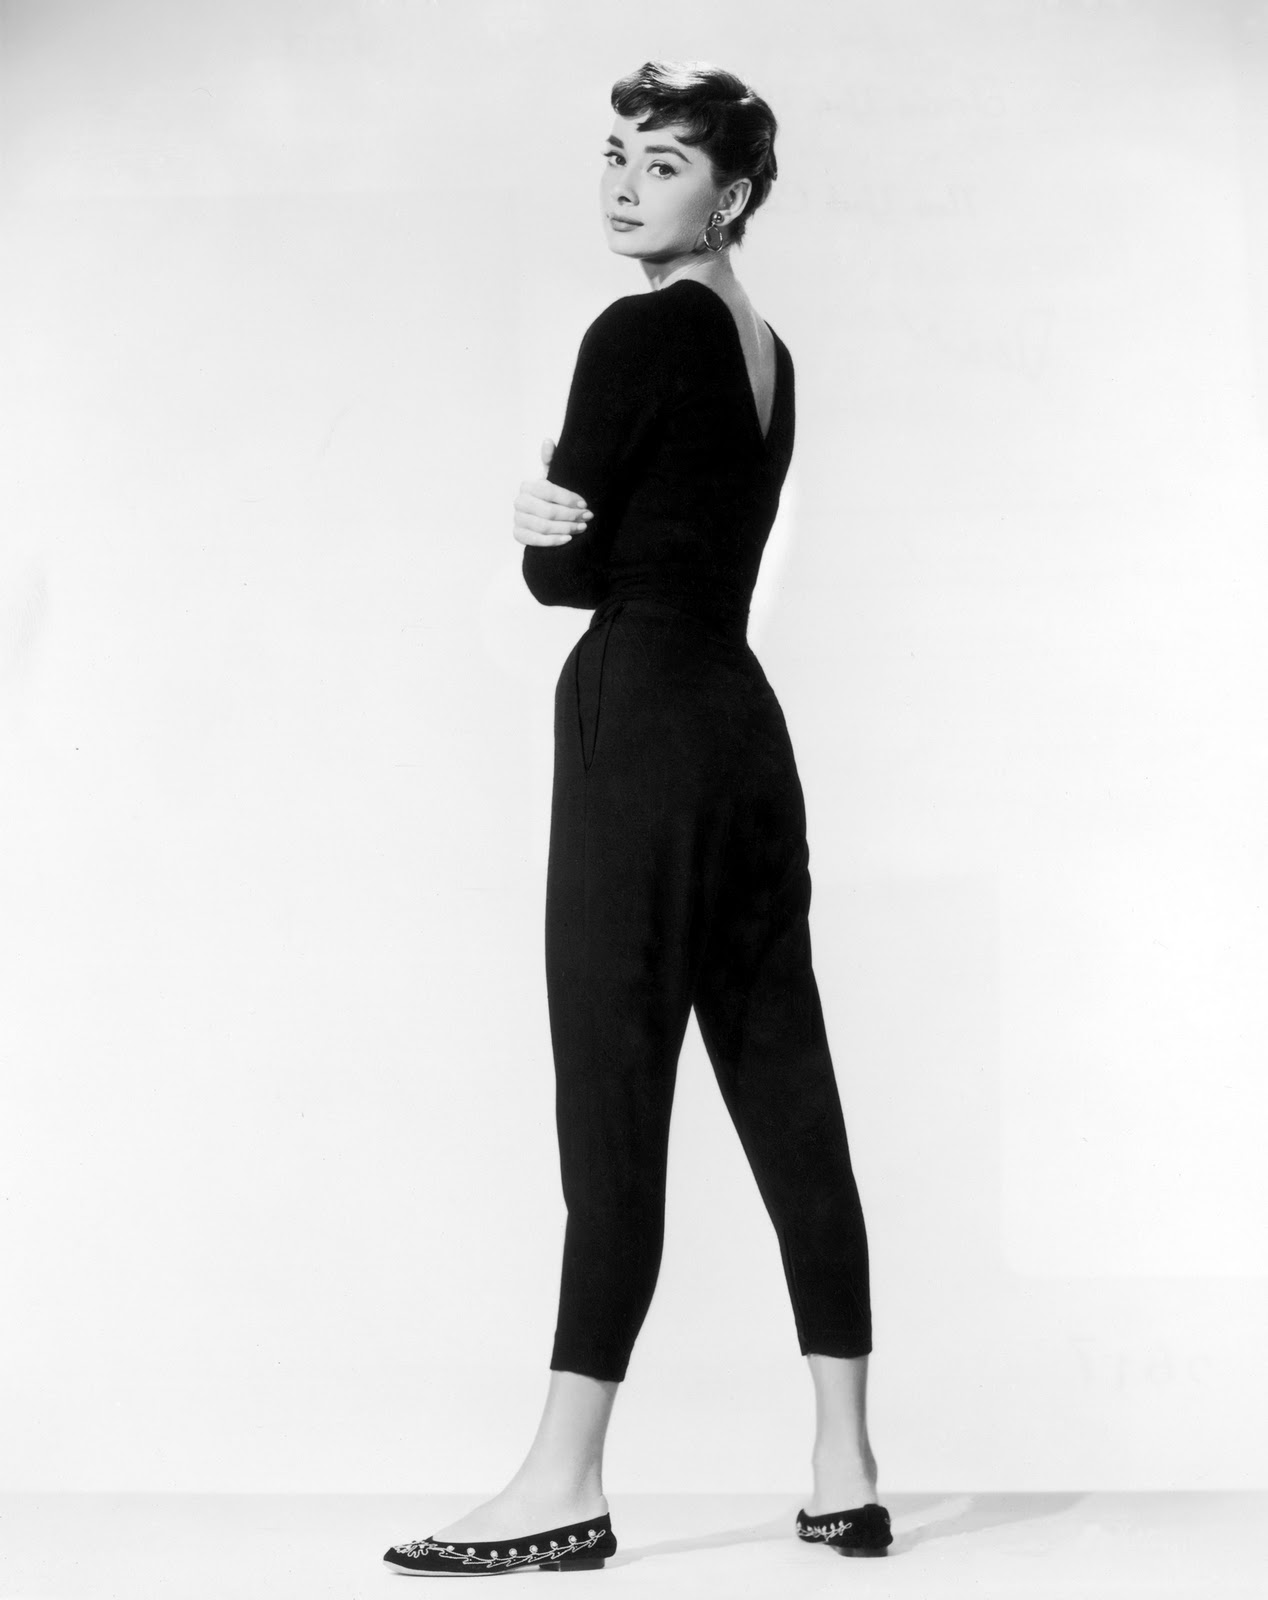 f2b189c063c Yesterday was my biggest style icon's birthday: Audrey Hepburn. I think  every fashion girl loves her. She is one of the biggest fashion icons of the  world.